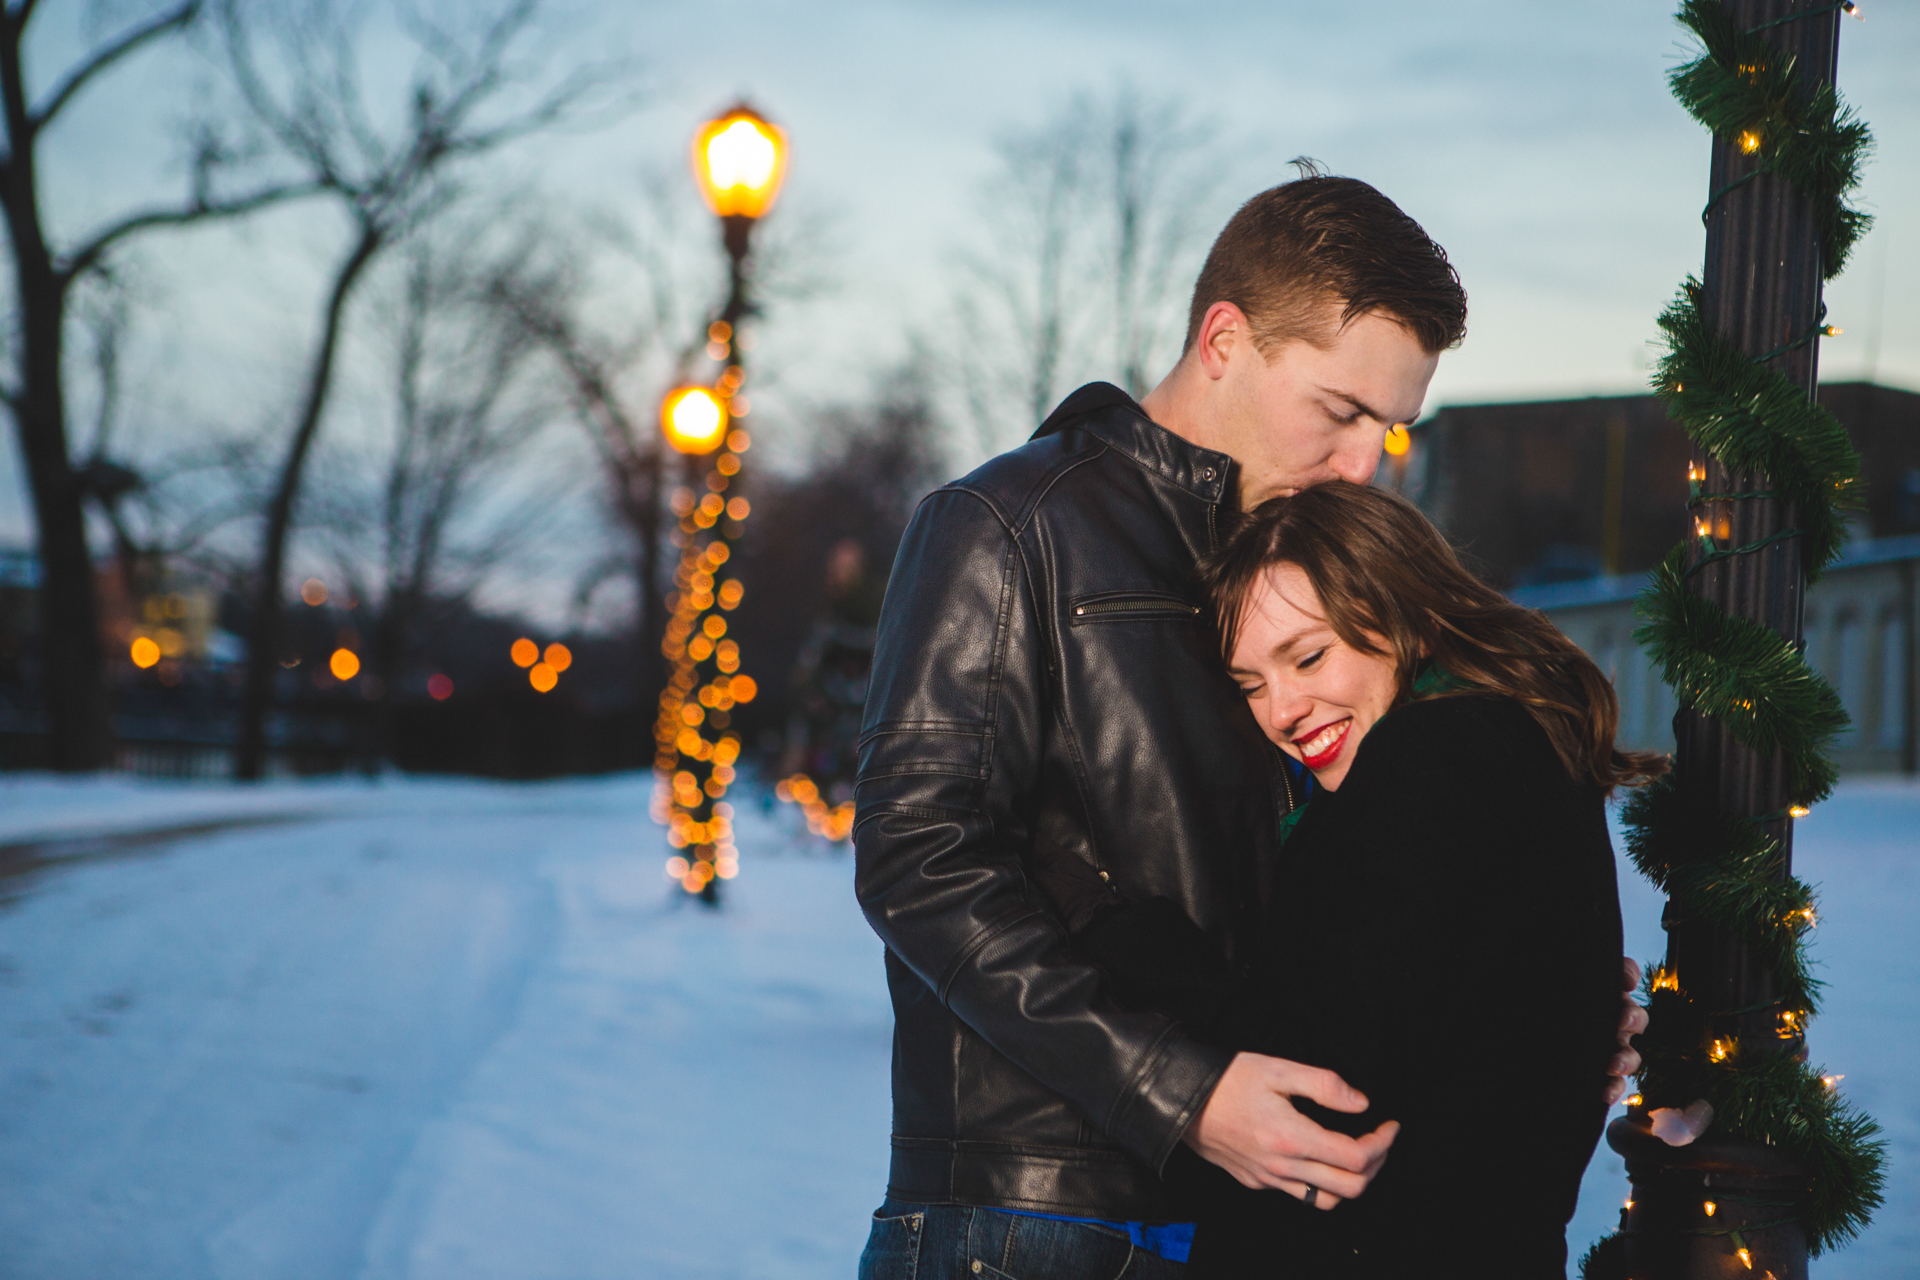 military engagement pictures cantigny wheaton illinois army national guard winter christmas snow batavia riverwalk riverfront-50.jpg